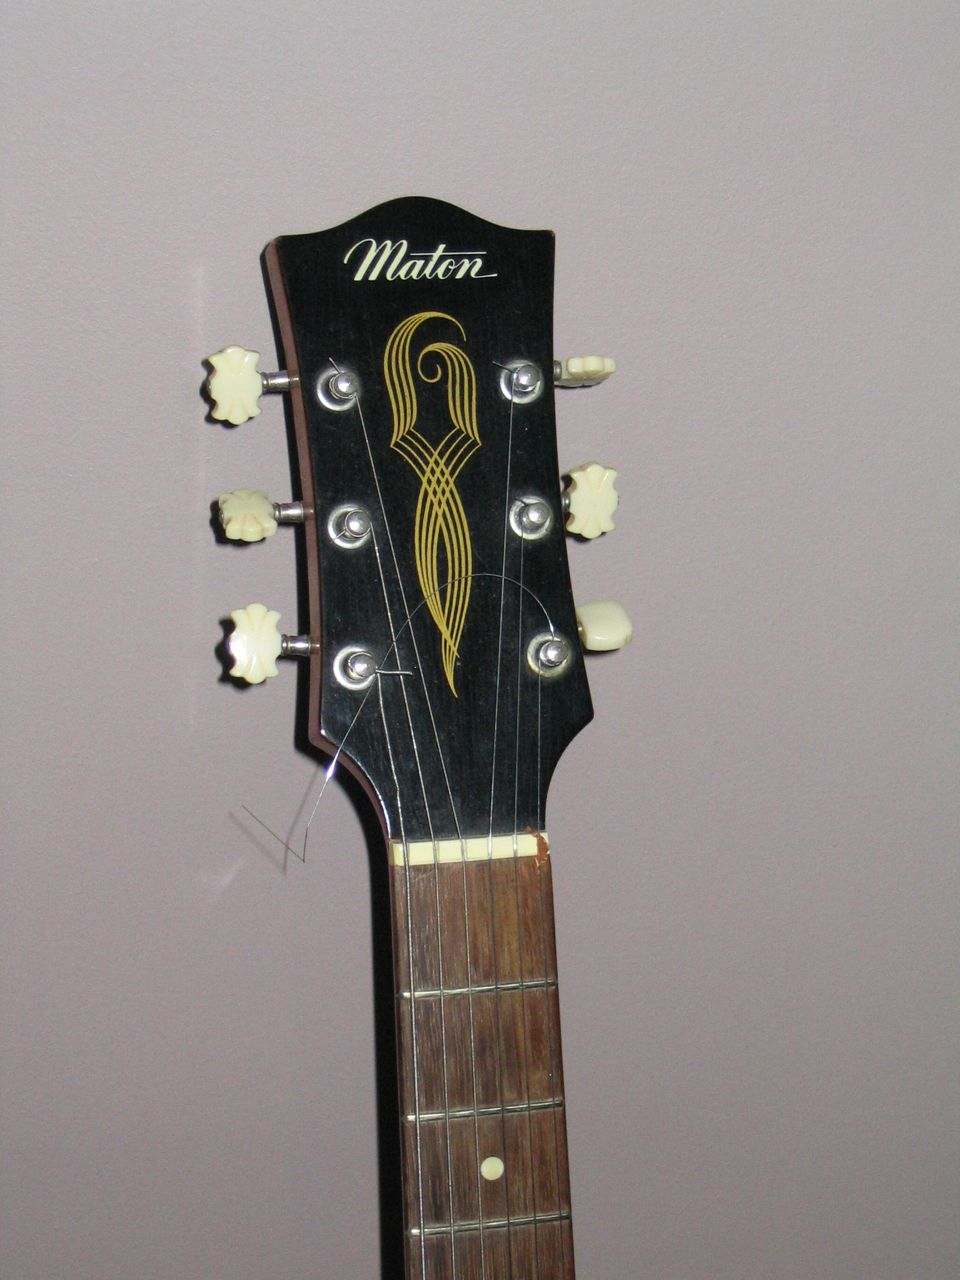 file maton electric guitar 1960s wikimedia commons. Black Bedroom Furniture Sets. Home Design Ideas